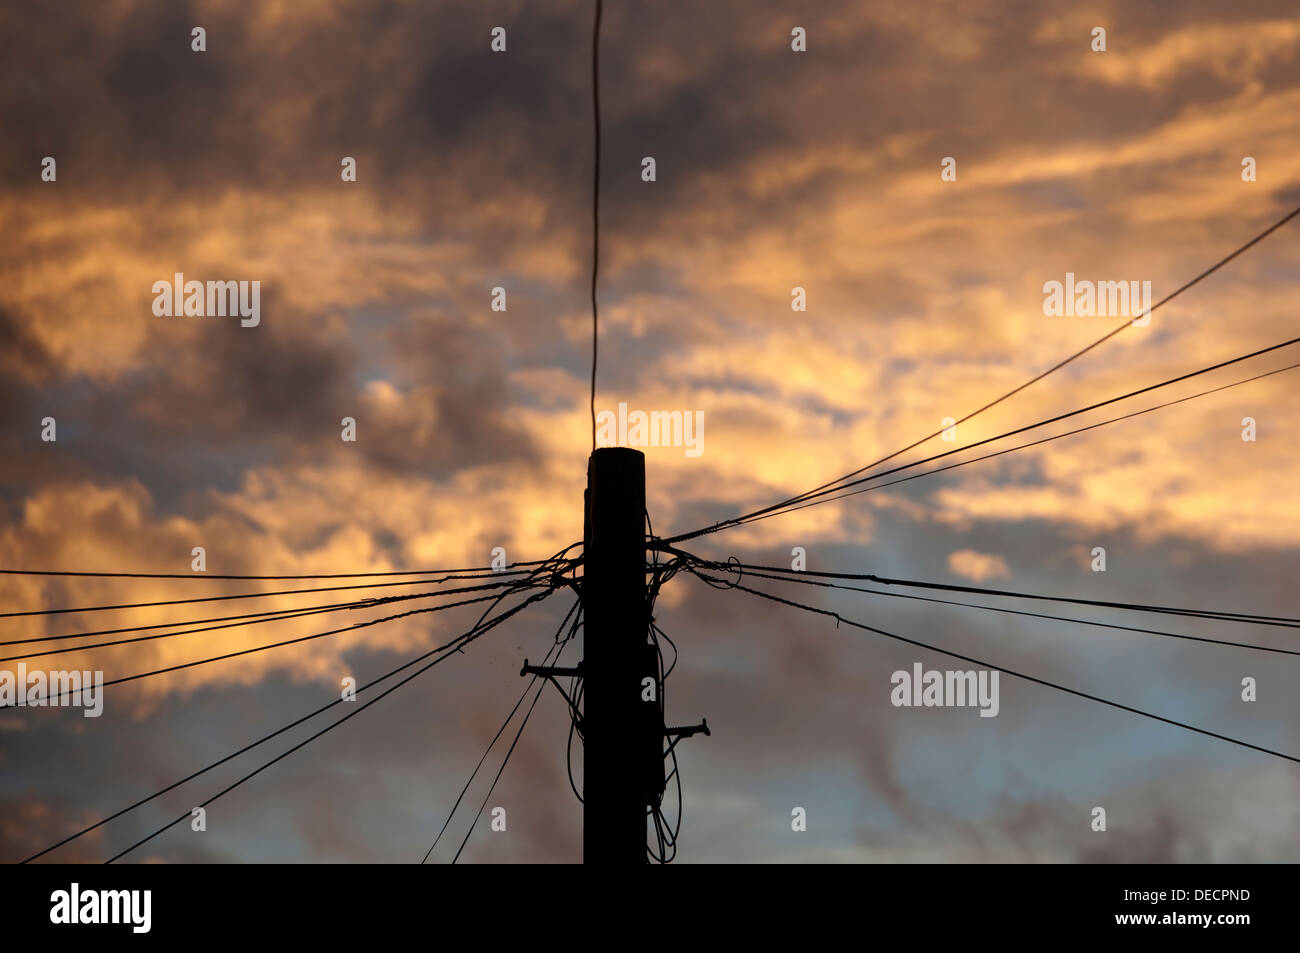 Telephone wires radiating from a pole, UK - Stock Image